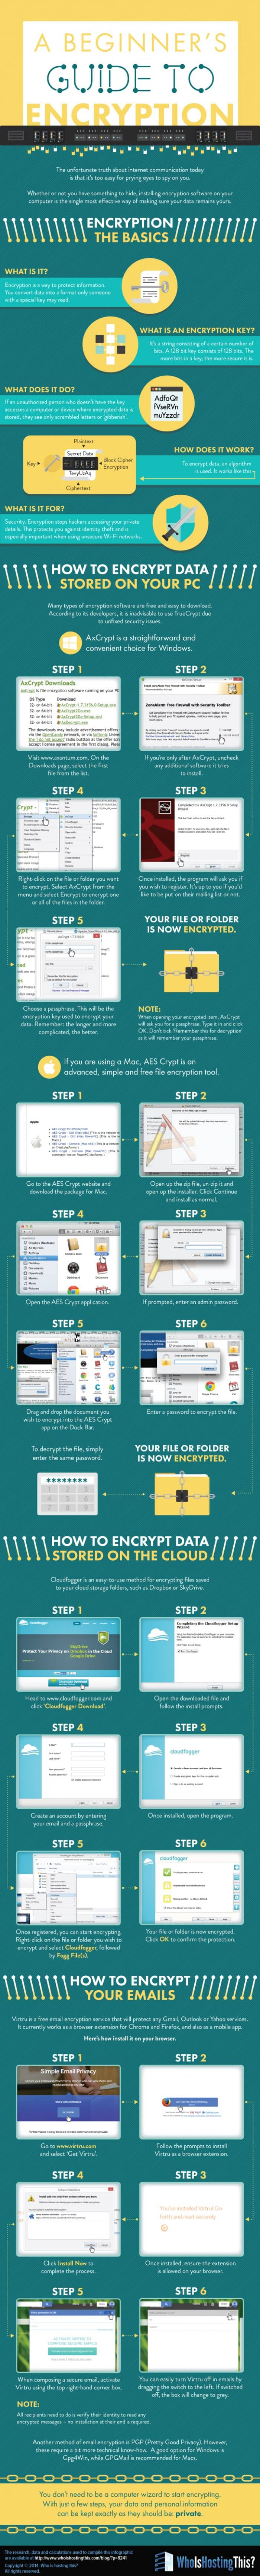 A Beginner's Guide to Encryption Infographic